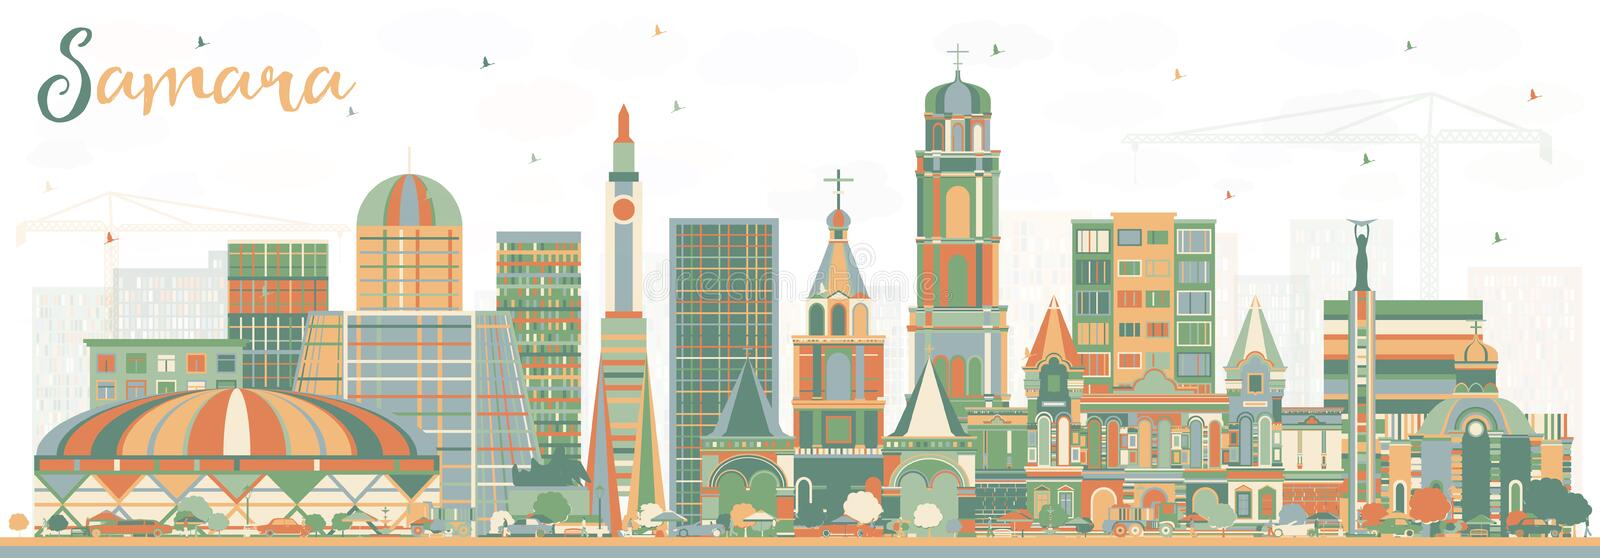 Samara Russia City Skyline med färgbyggnader royaltyfri illustrationer